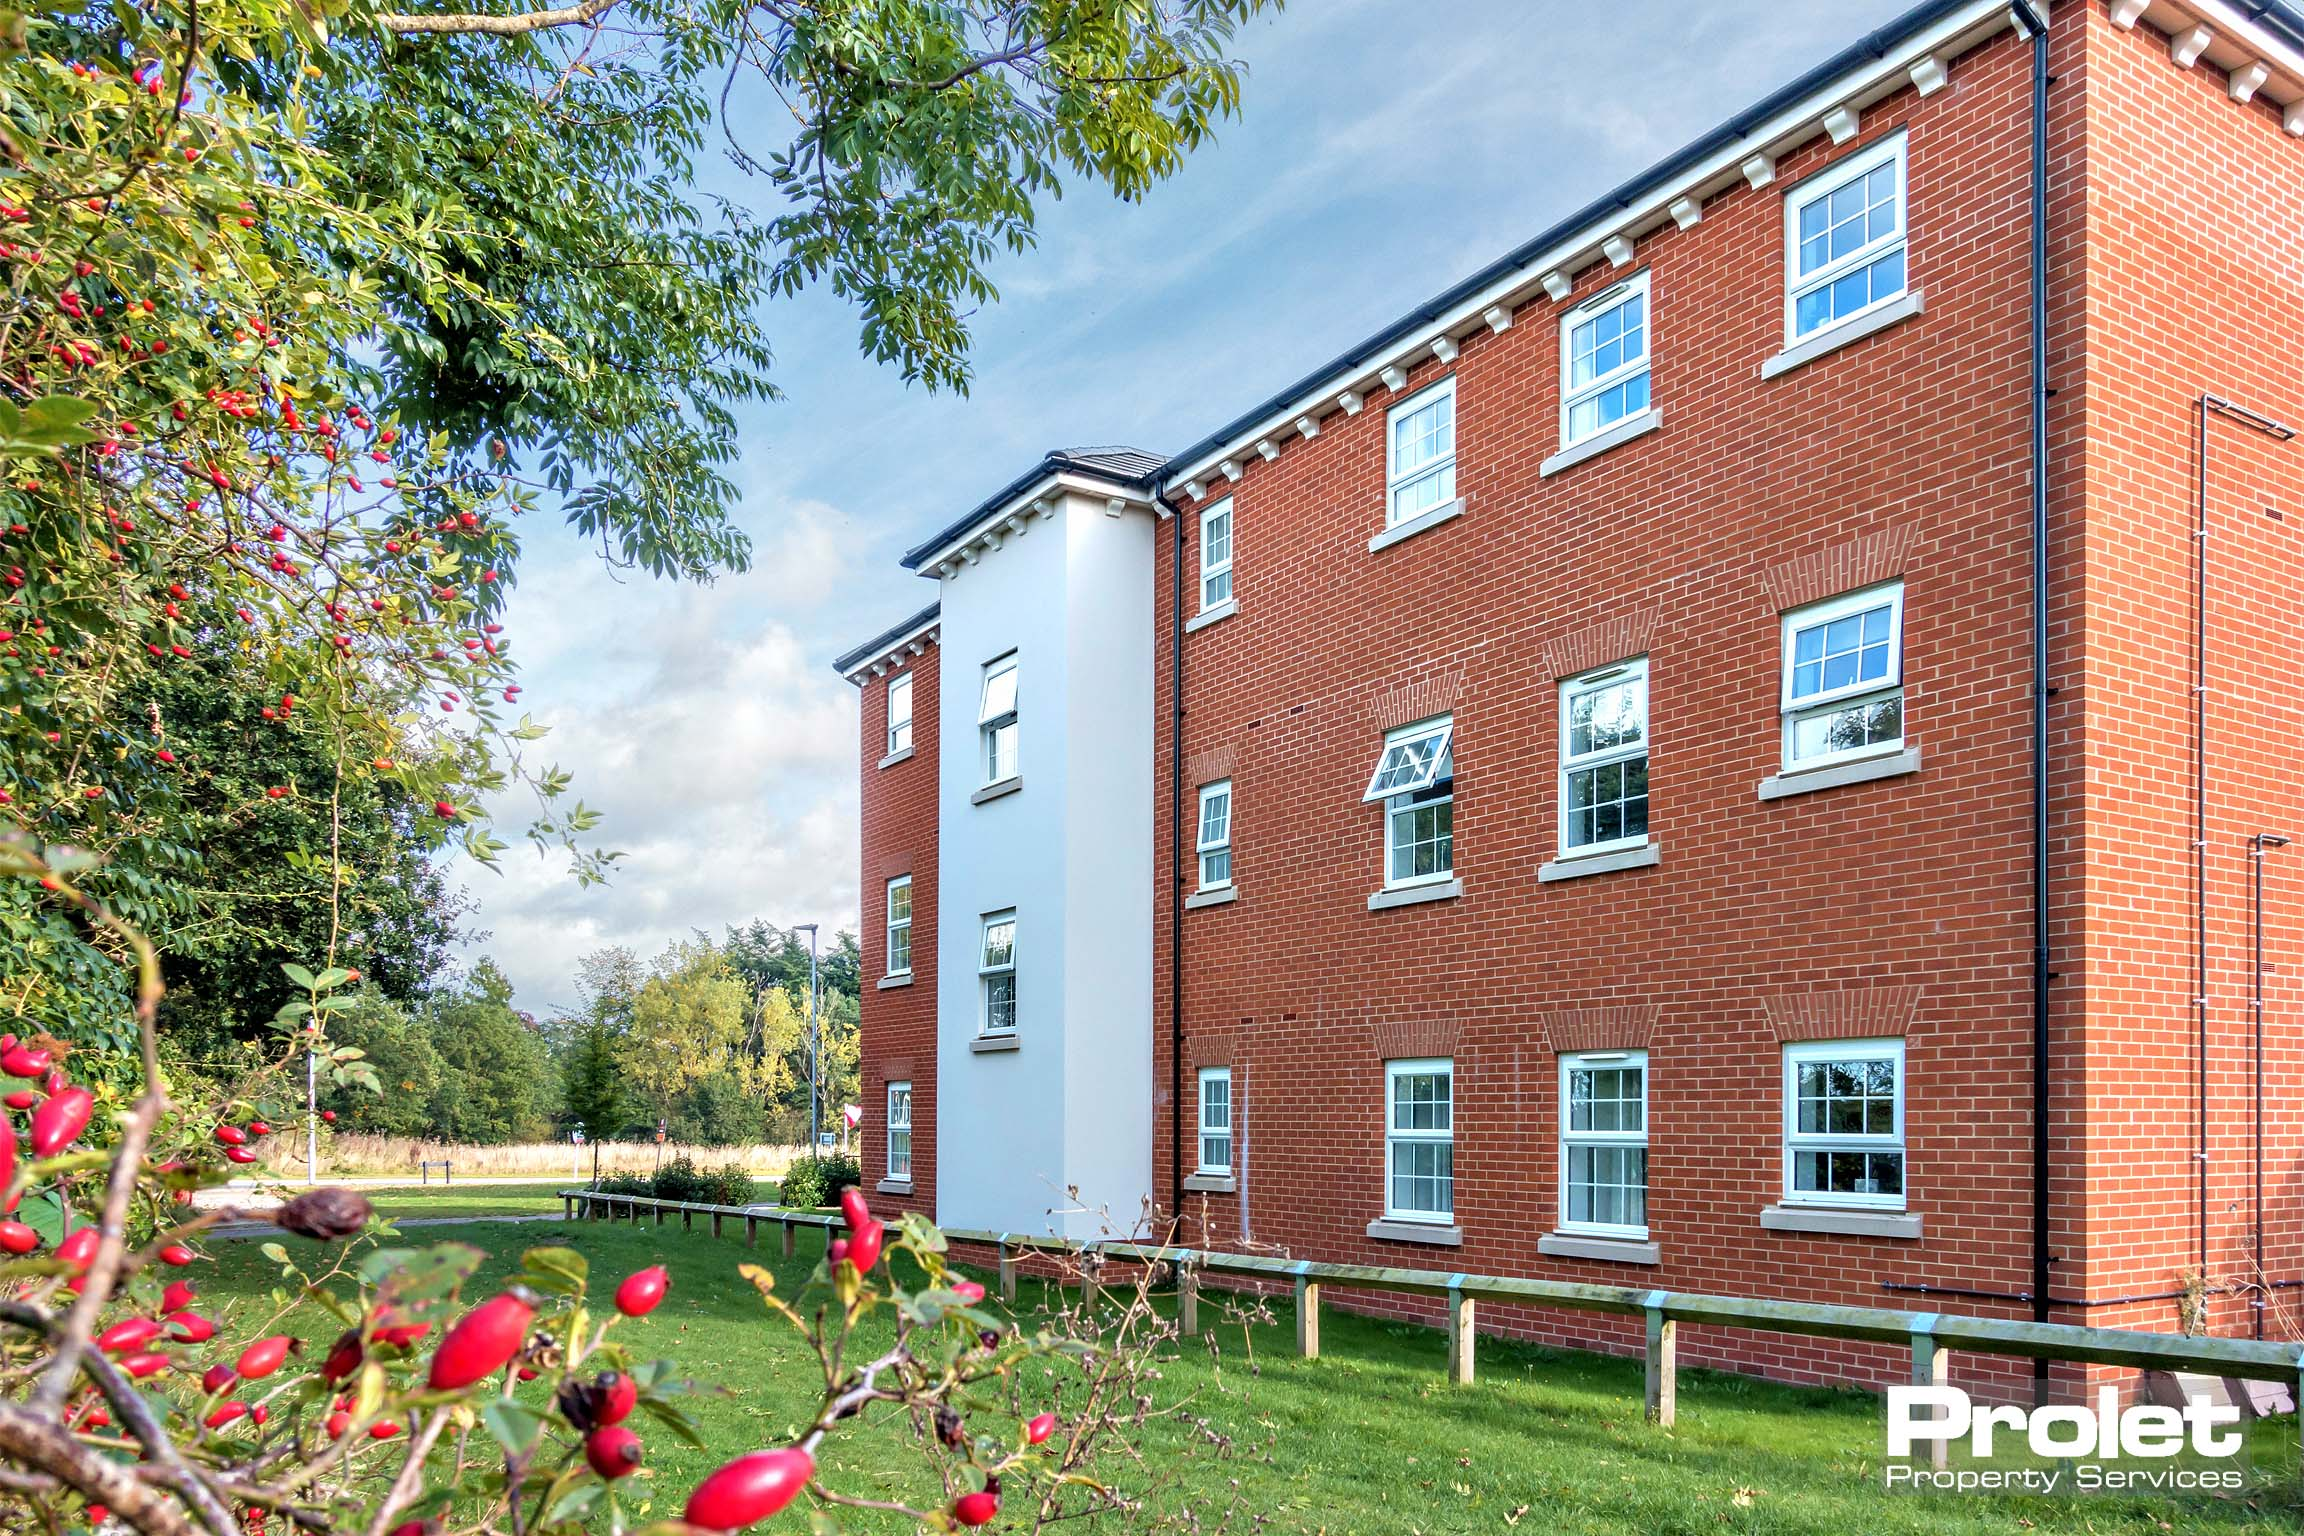 Booking a viewing for Cordwainer Close, Sprowston, NR7 8GT